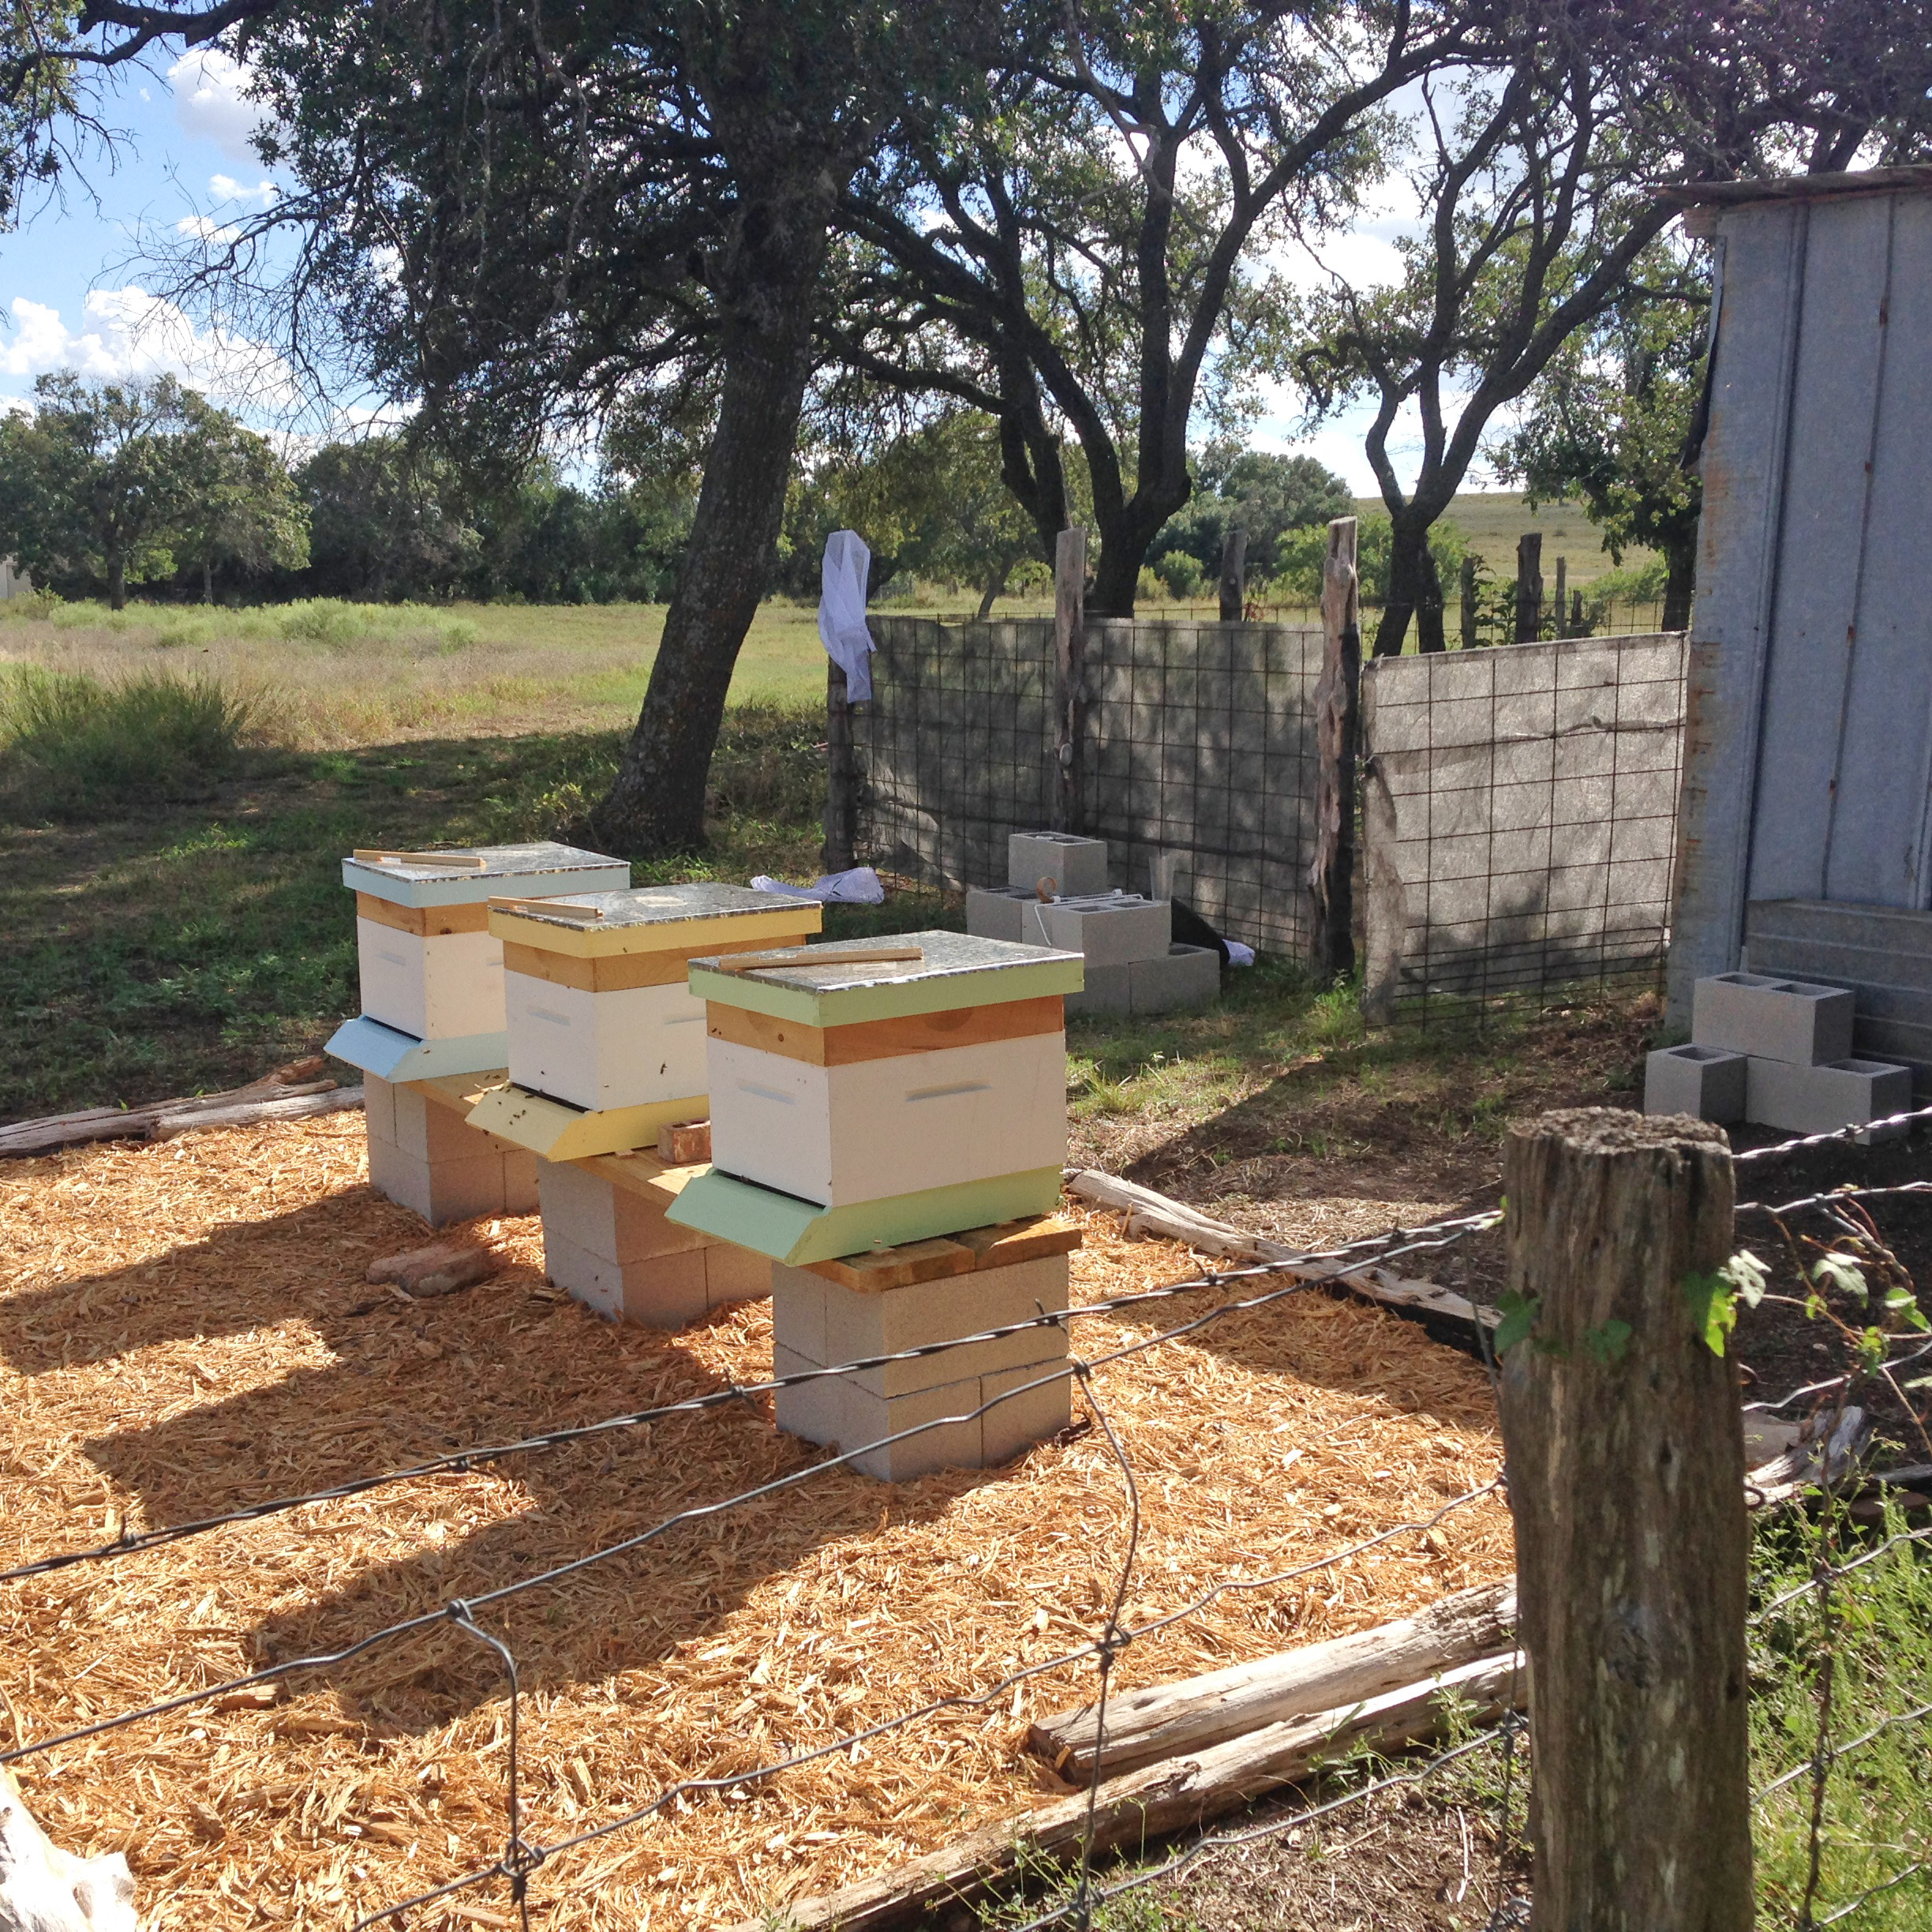 The bees settling in